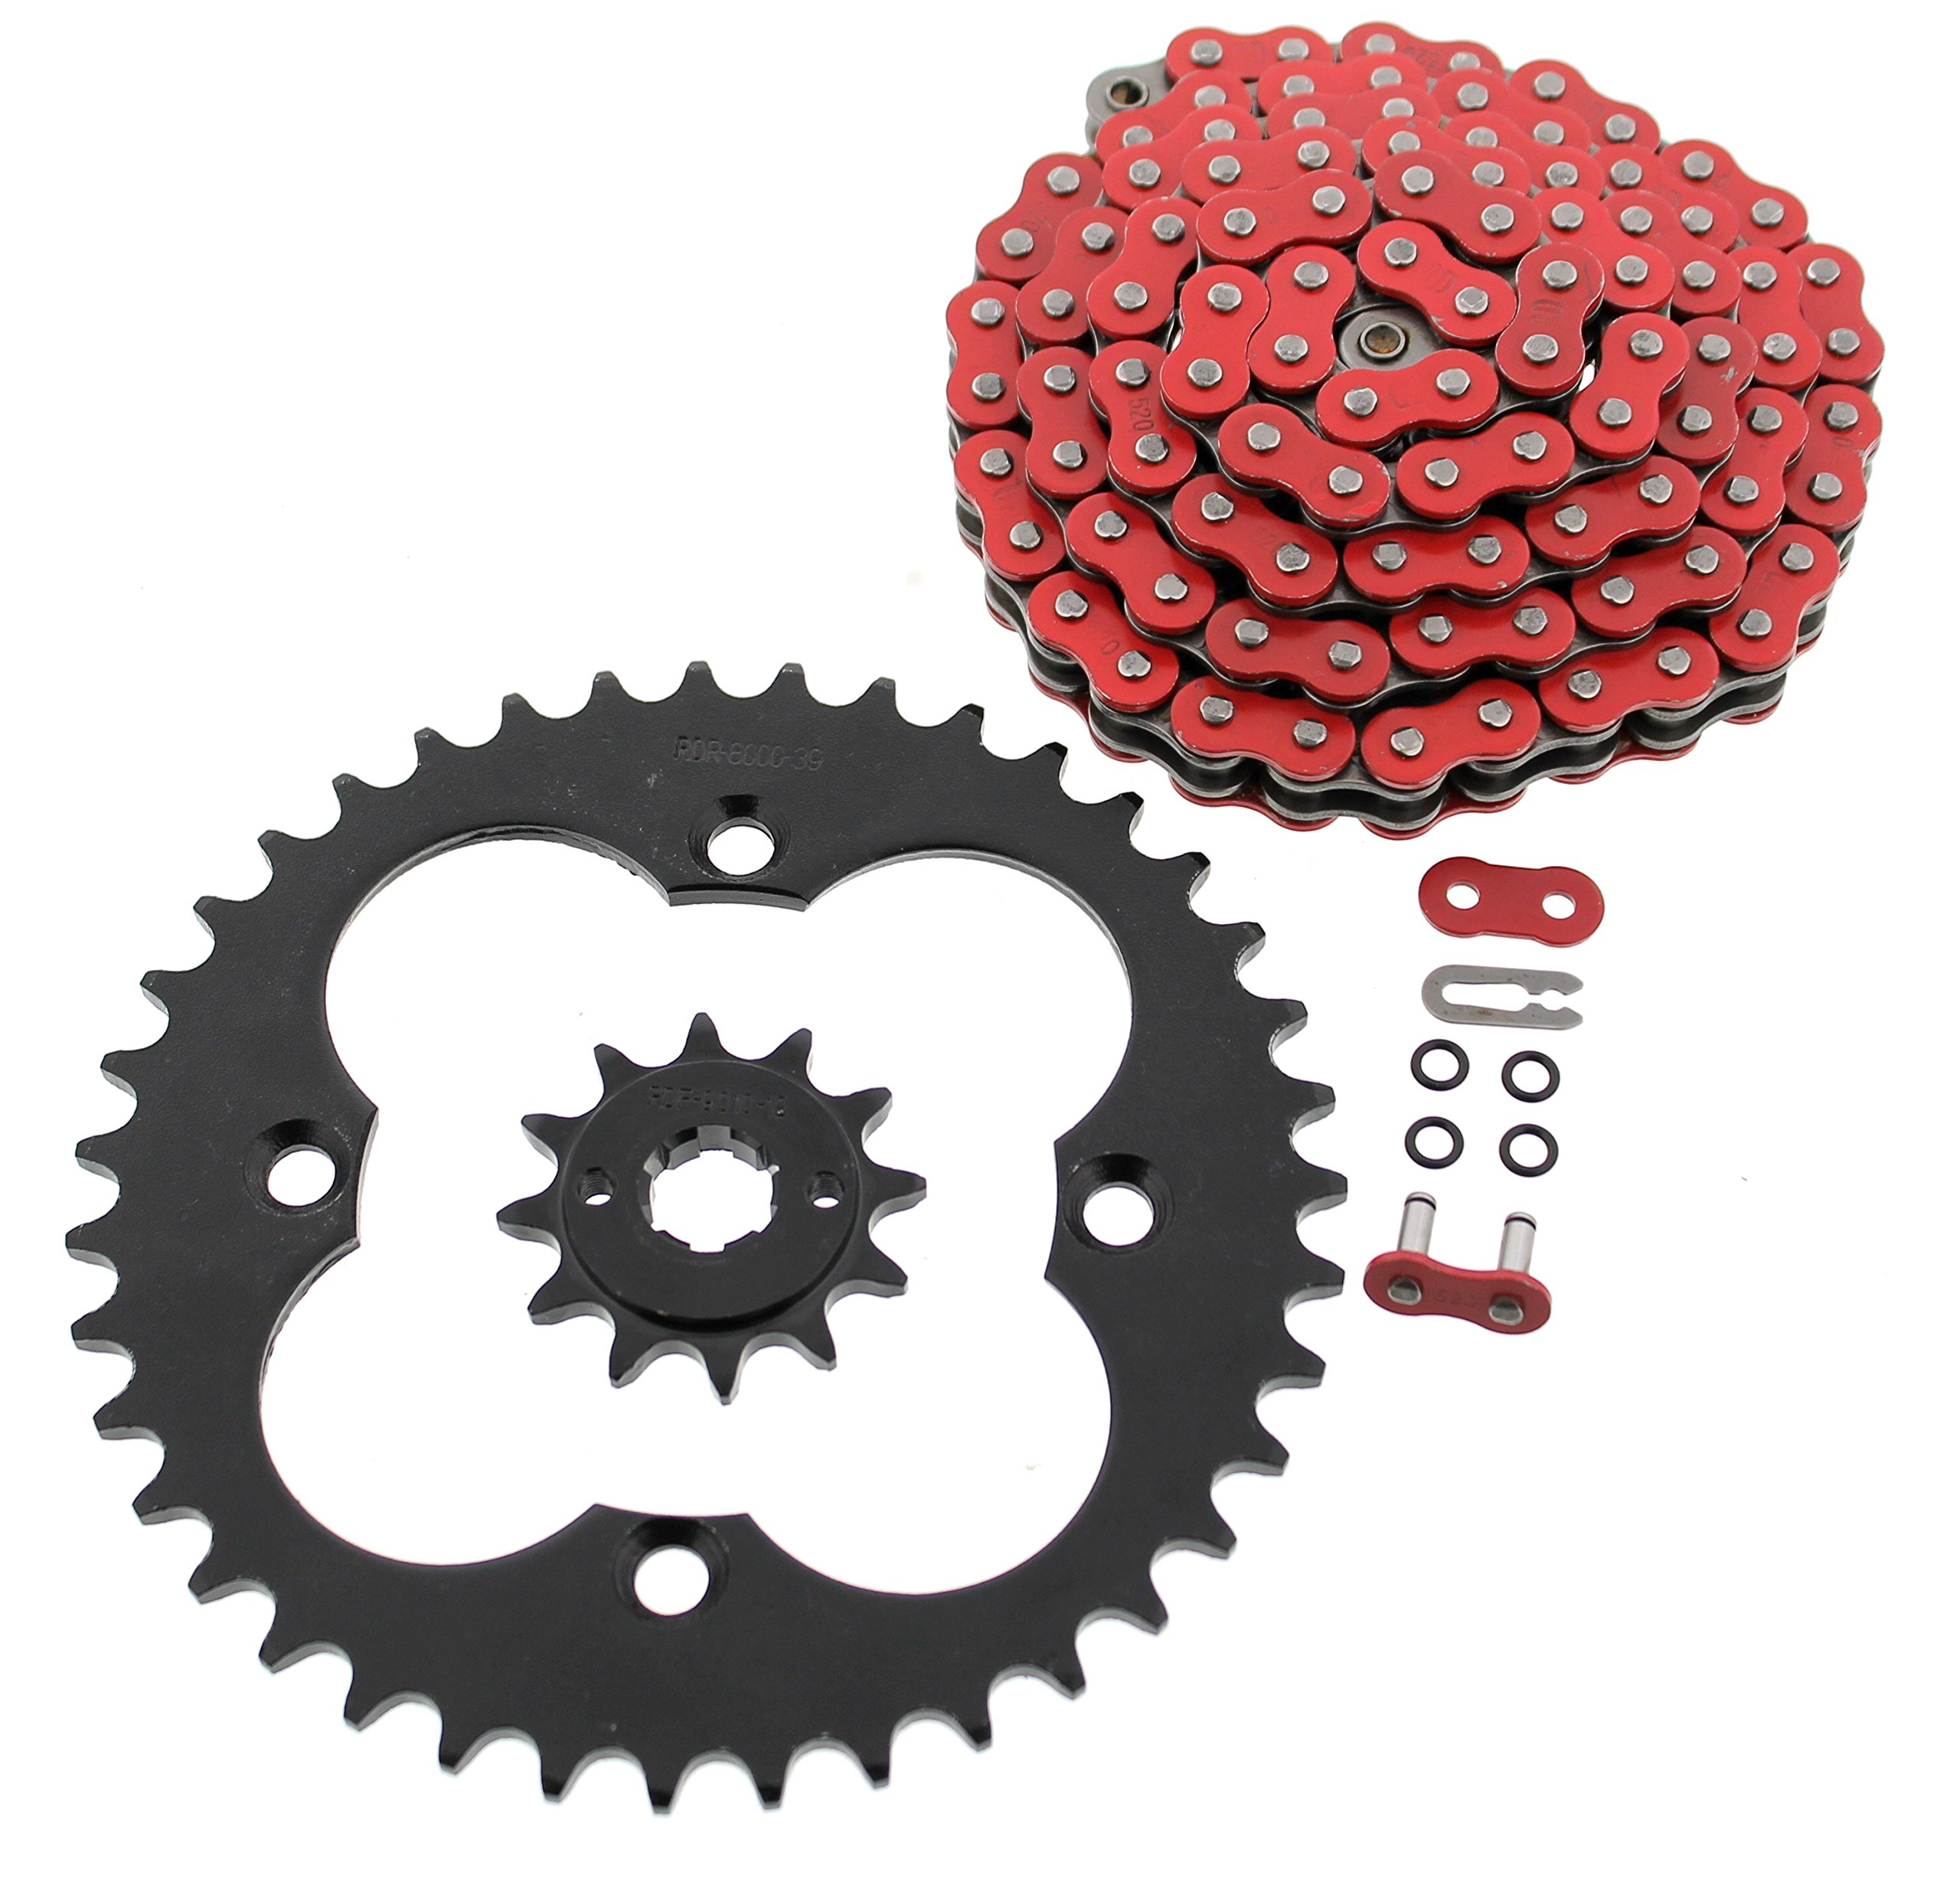 1986 1987 Fits Honda TRX250R TRX 250R Red O-Ring Chain and Black Sprocket 12/39 96L